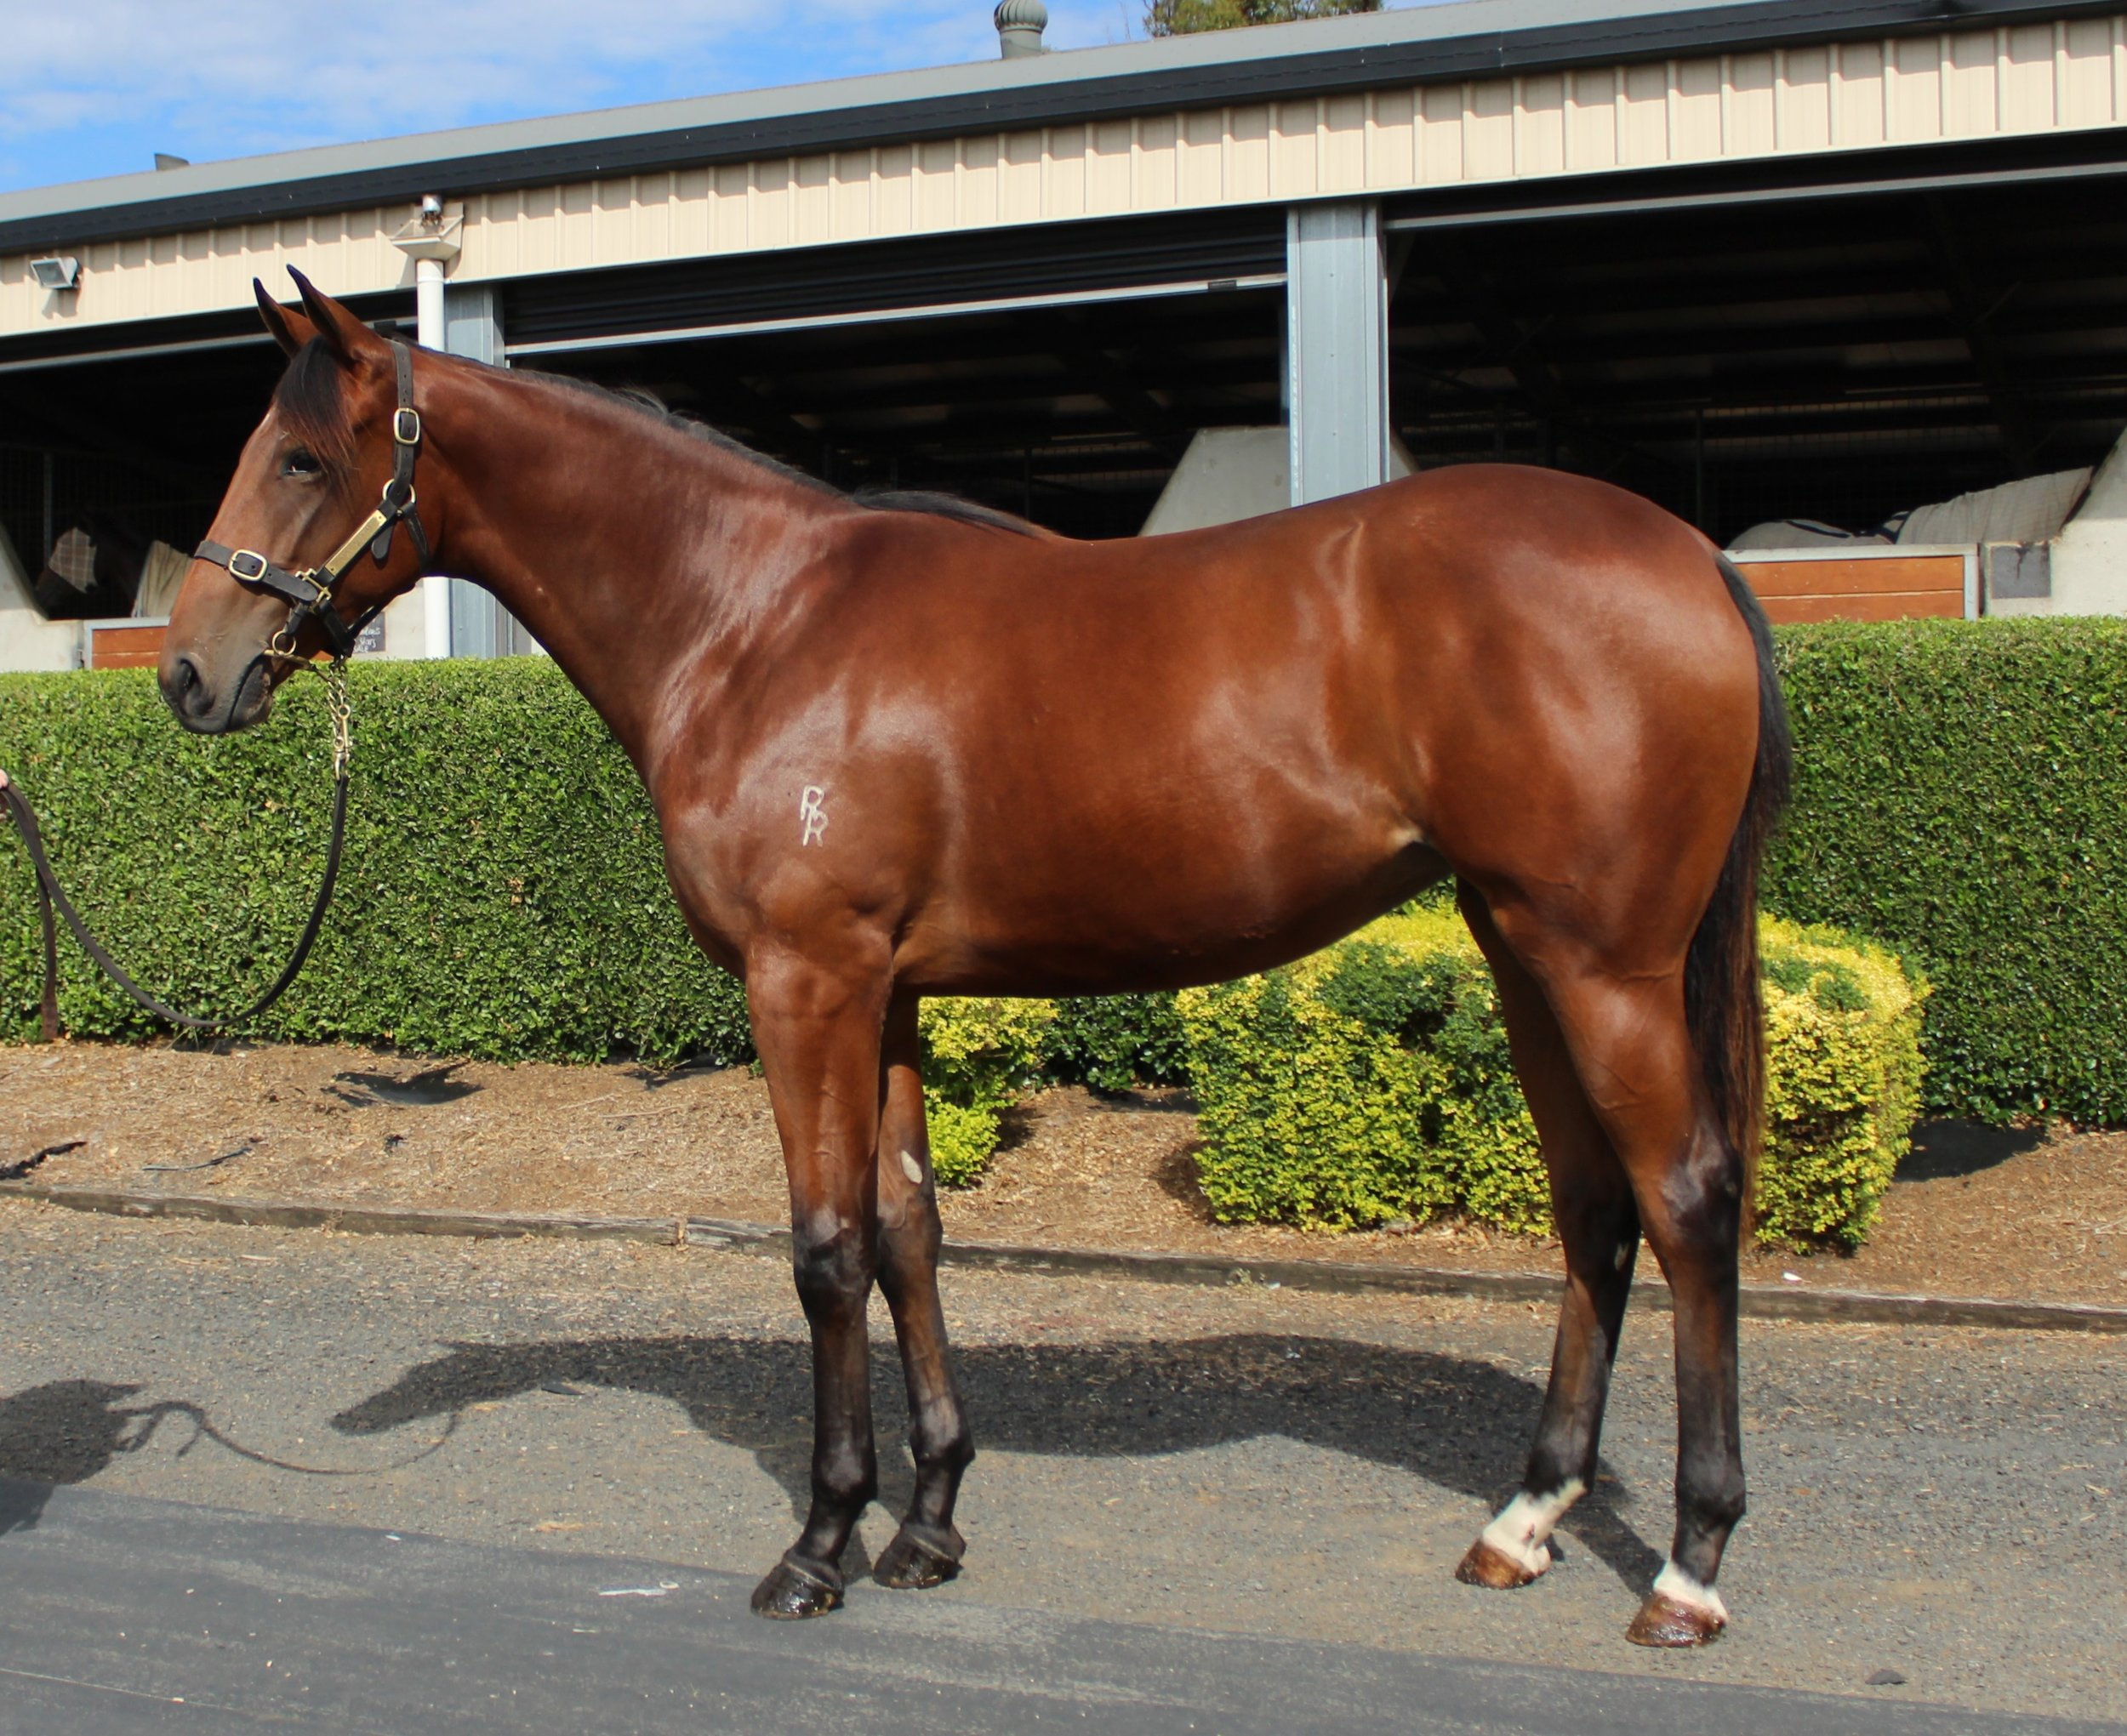 Lot 190 Top Echelon - Our Brightest Star